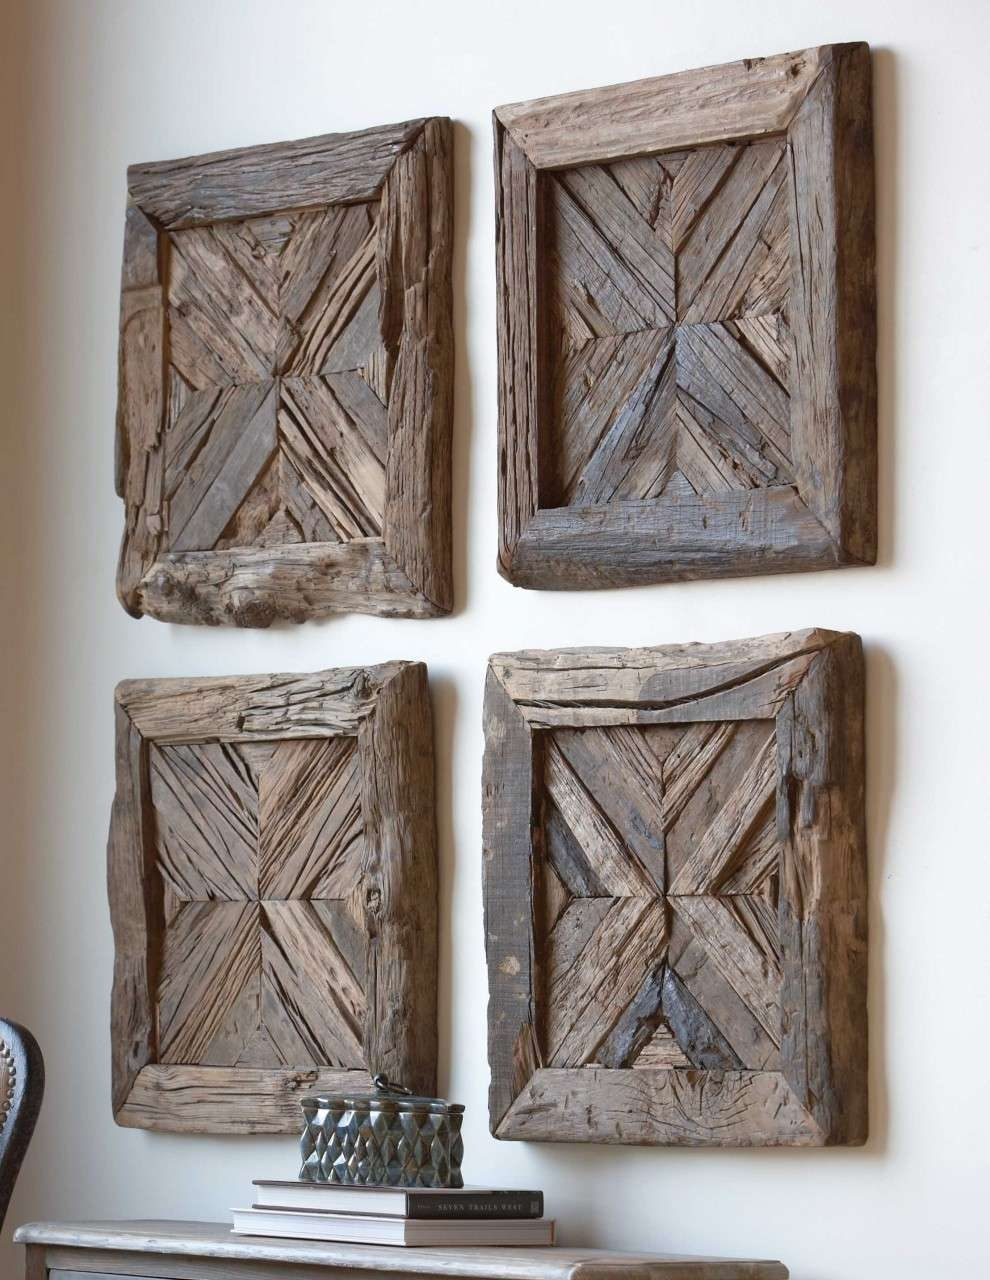 Wood Plank Wall Art Unique Great Examples Of Rustic Wall Art Of Wood Throughout Current Plank Wall Art (View 18 of 20)